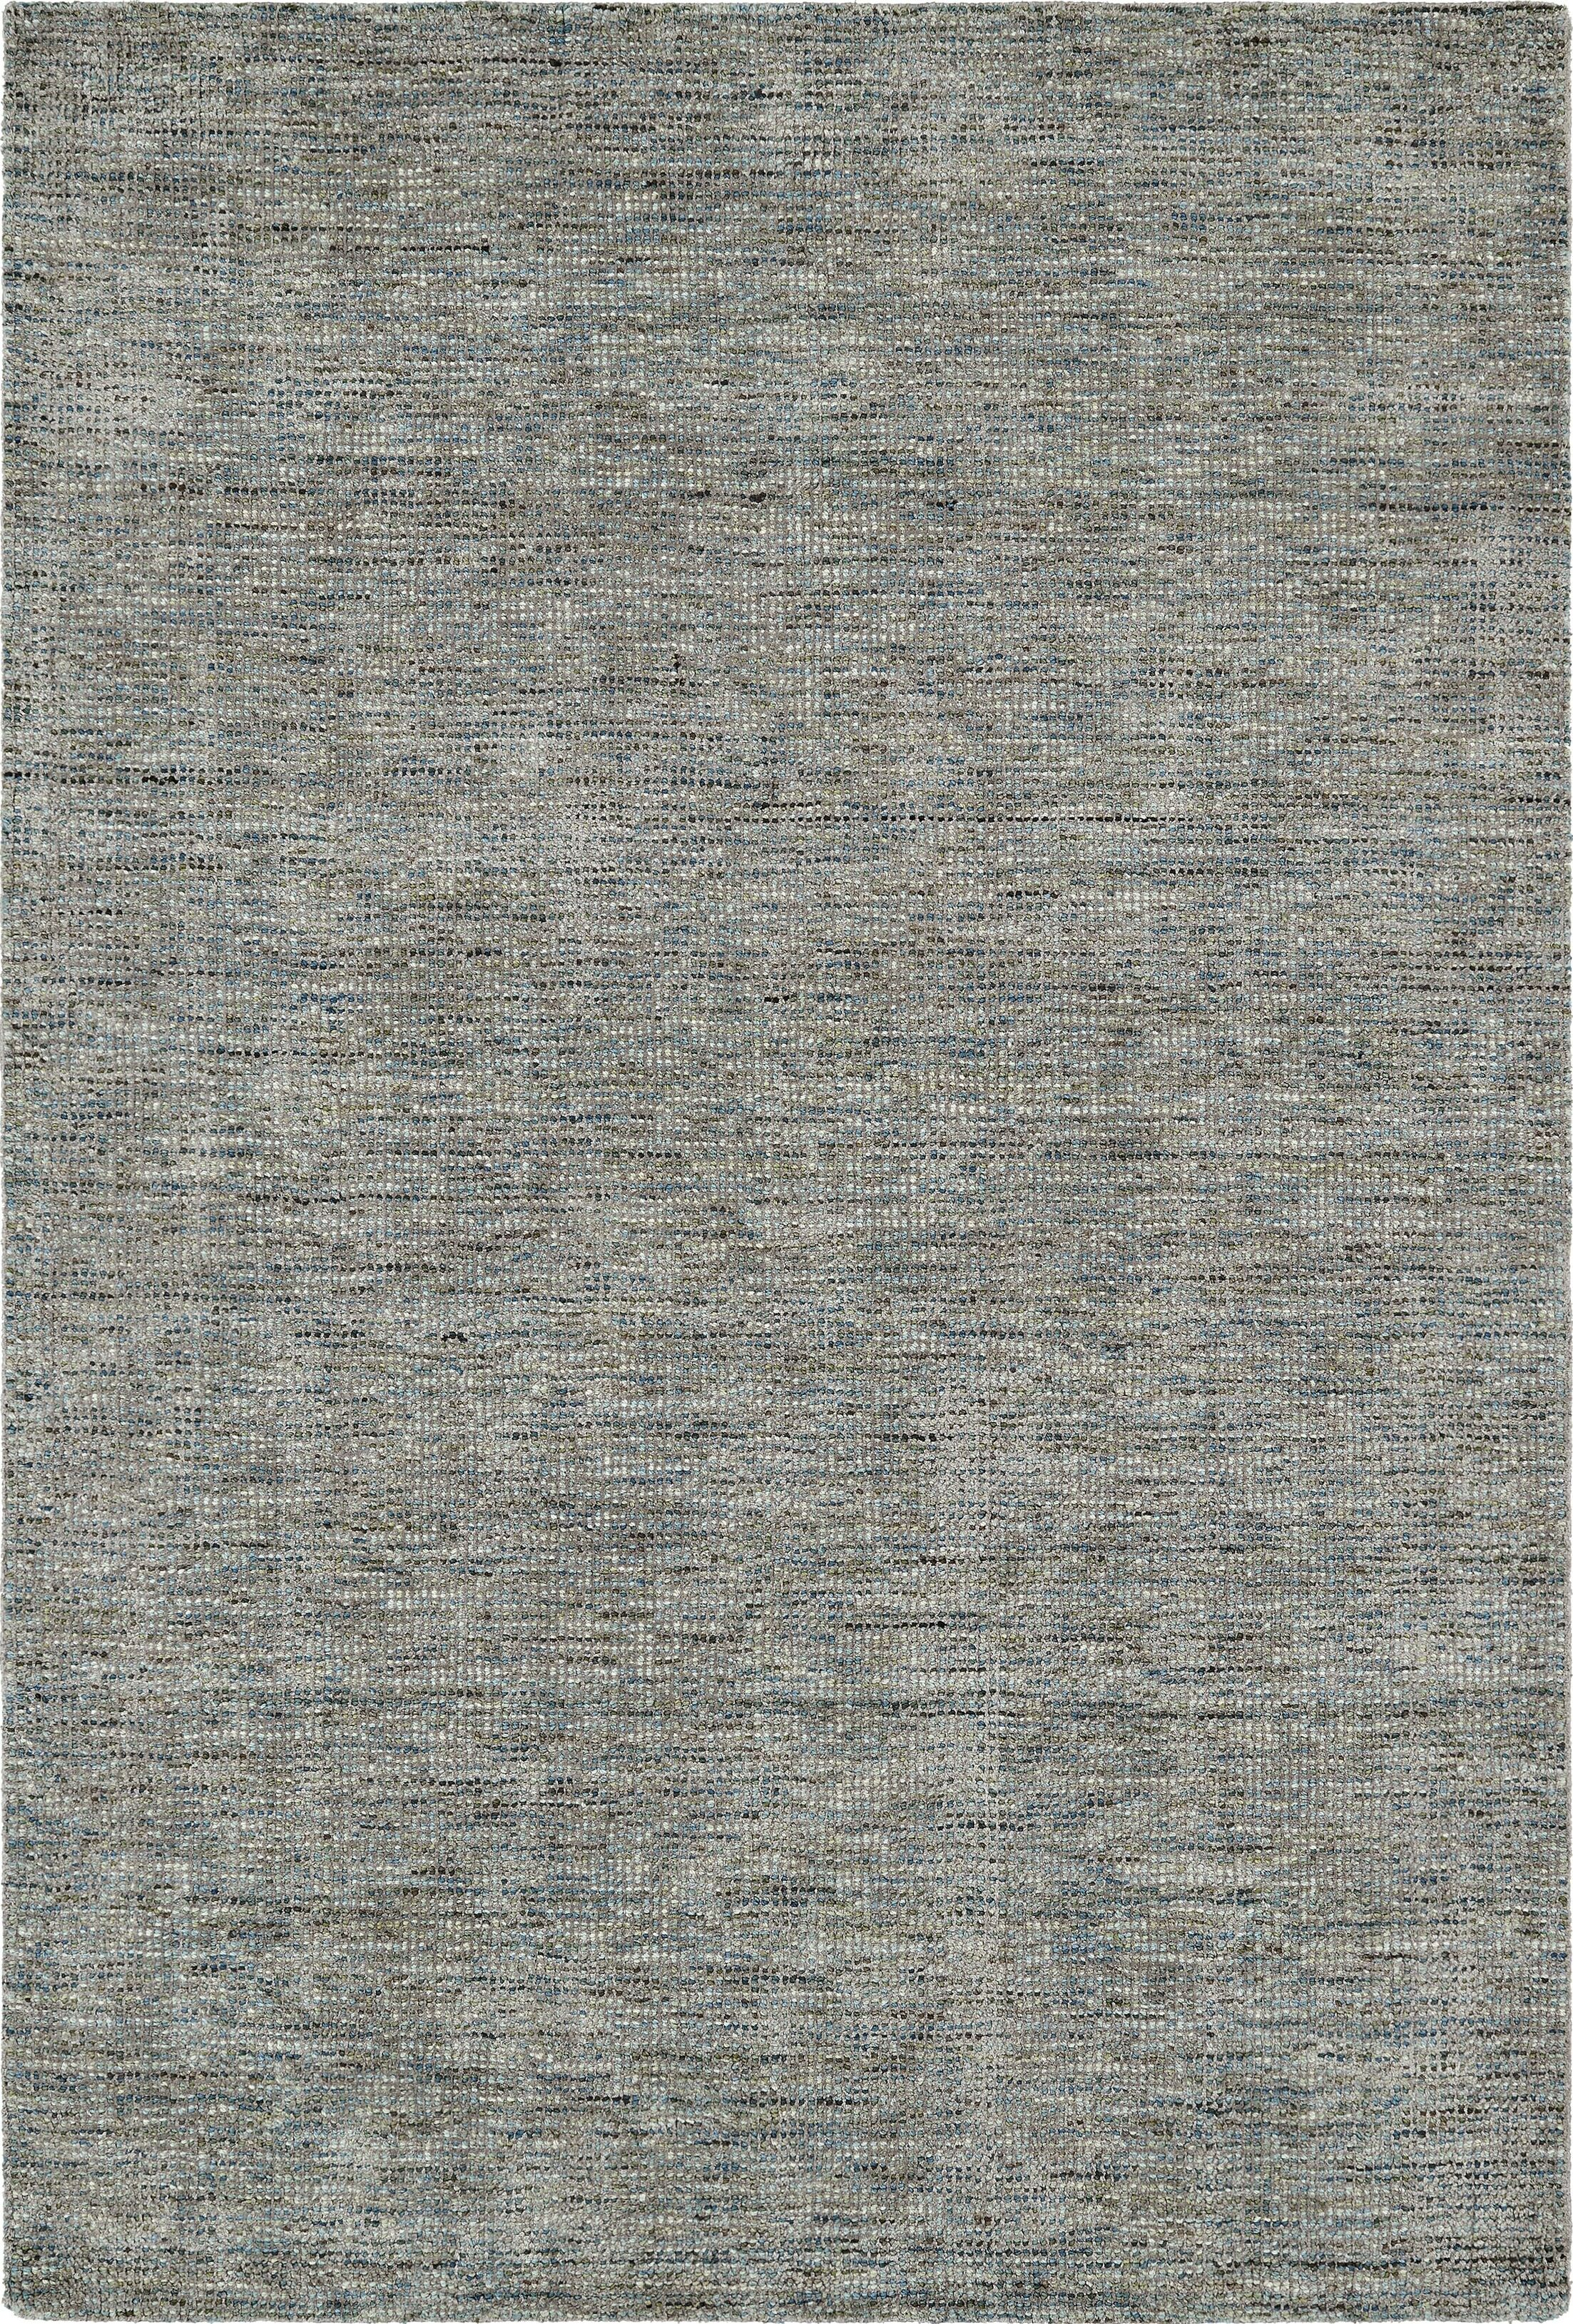 Toro Hand-Loomed Silver Area Rug Rug Size: Rectangle 9' x 13'